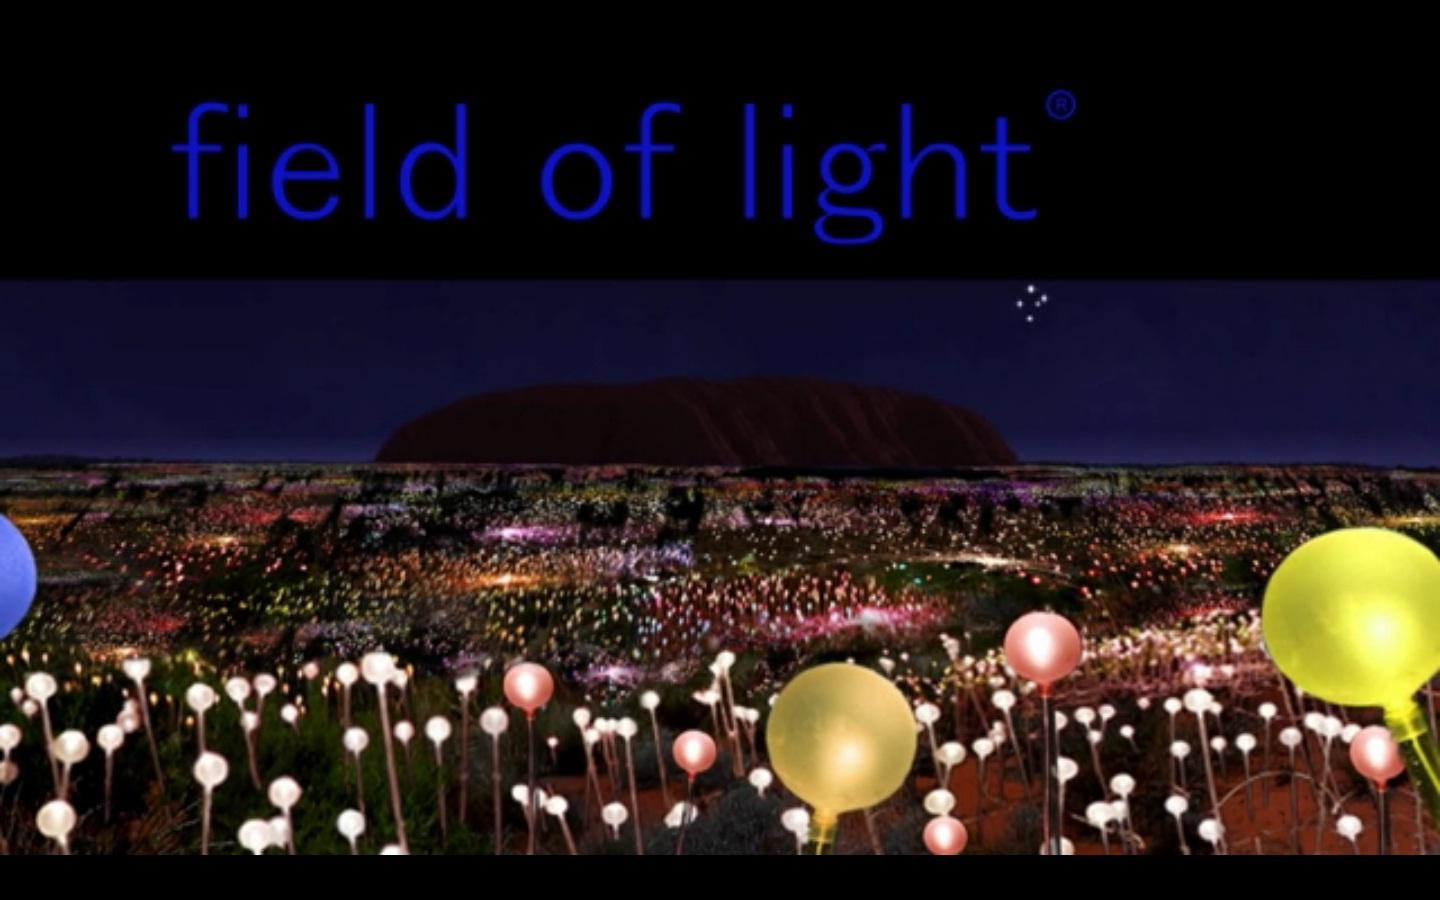 Munro's vision for a Field of Light at Uluru, Australia